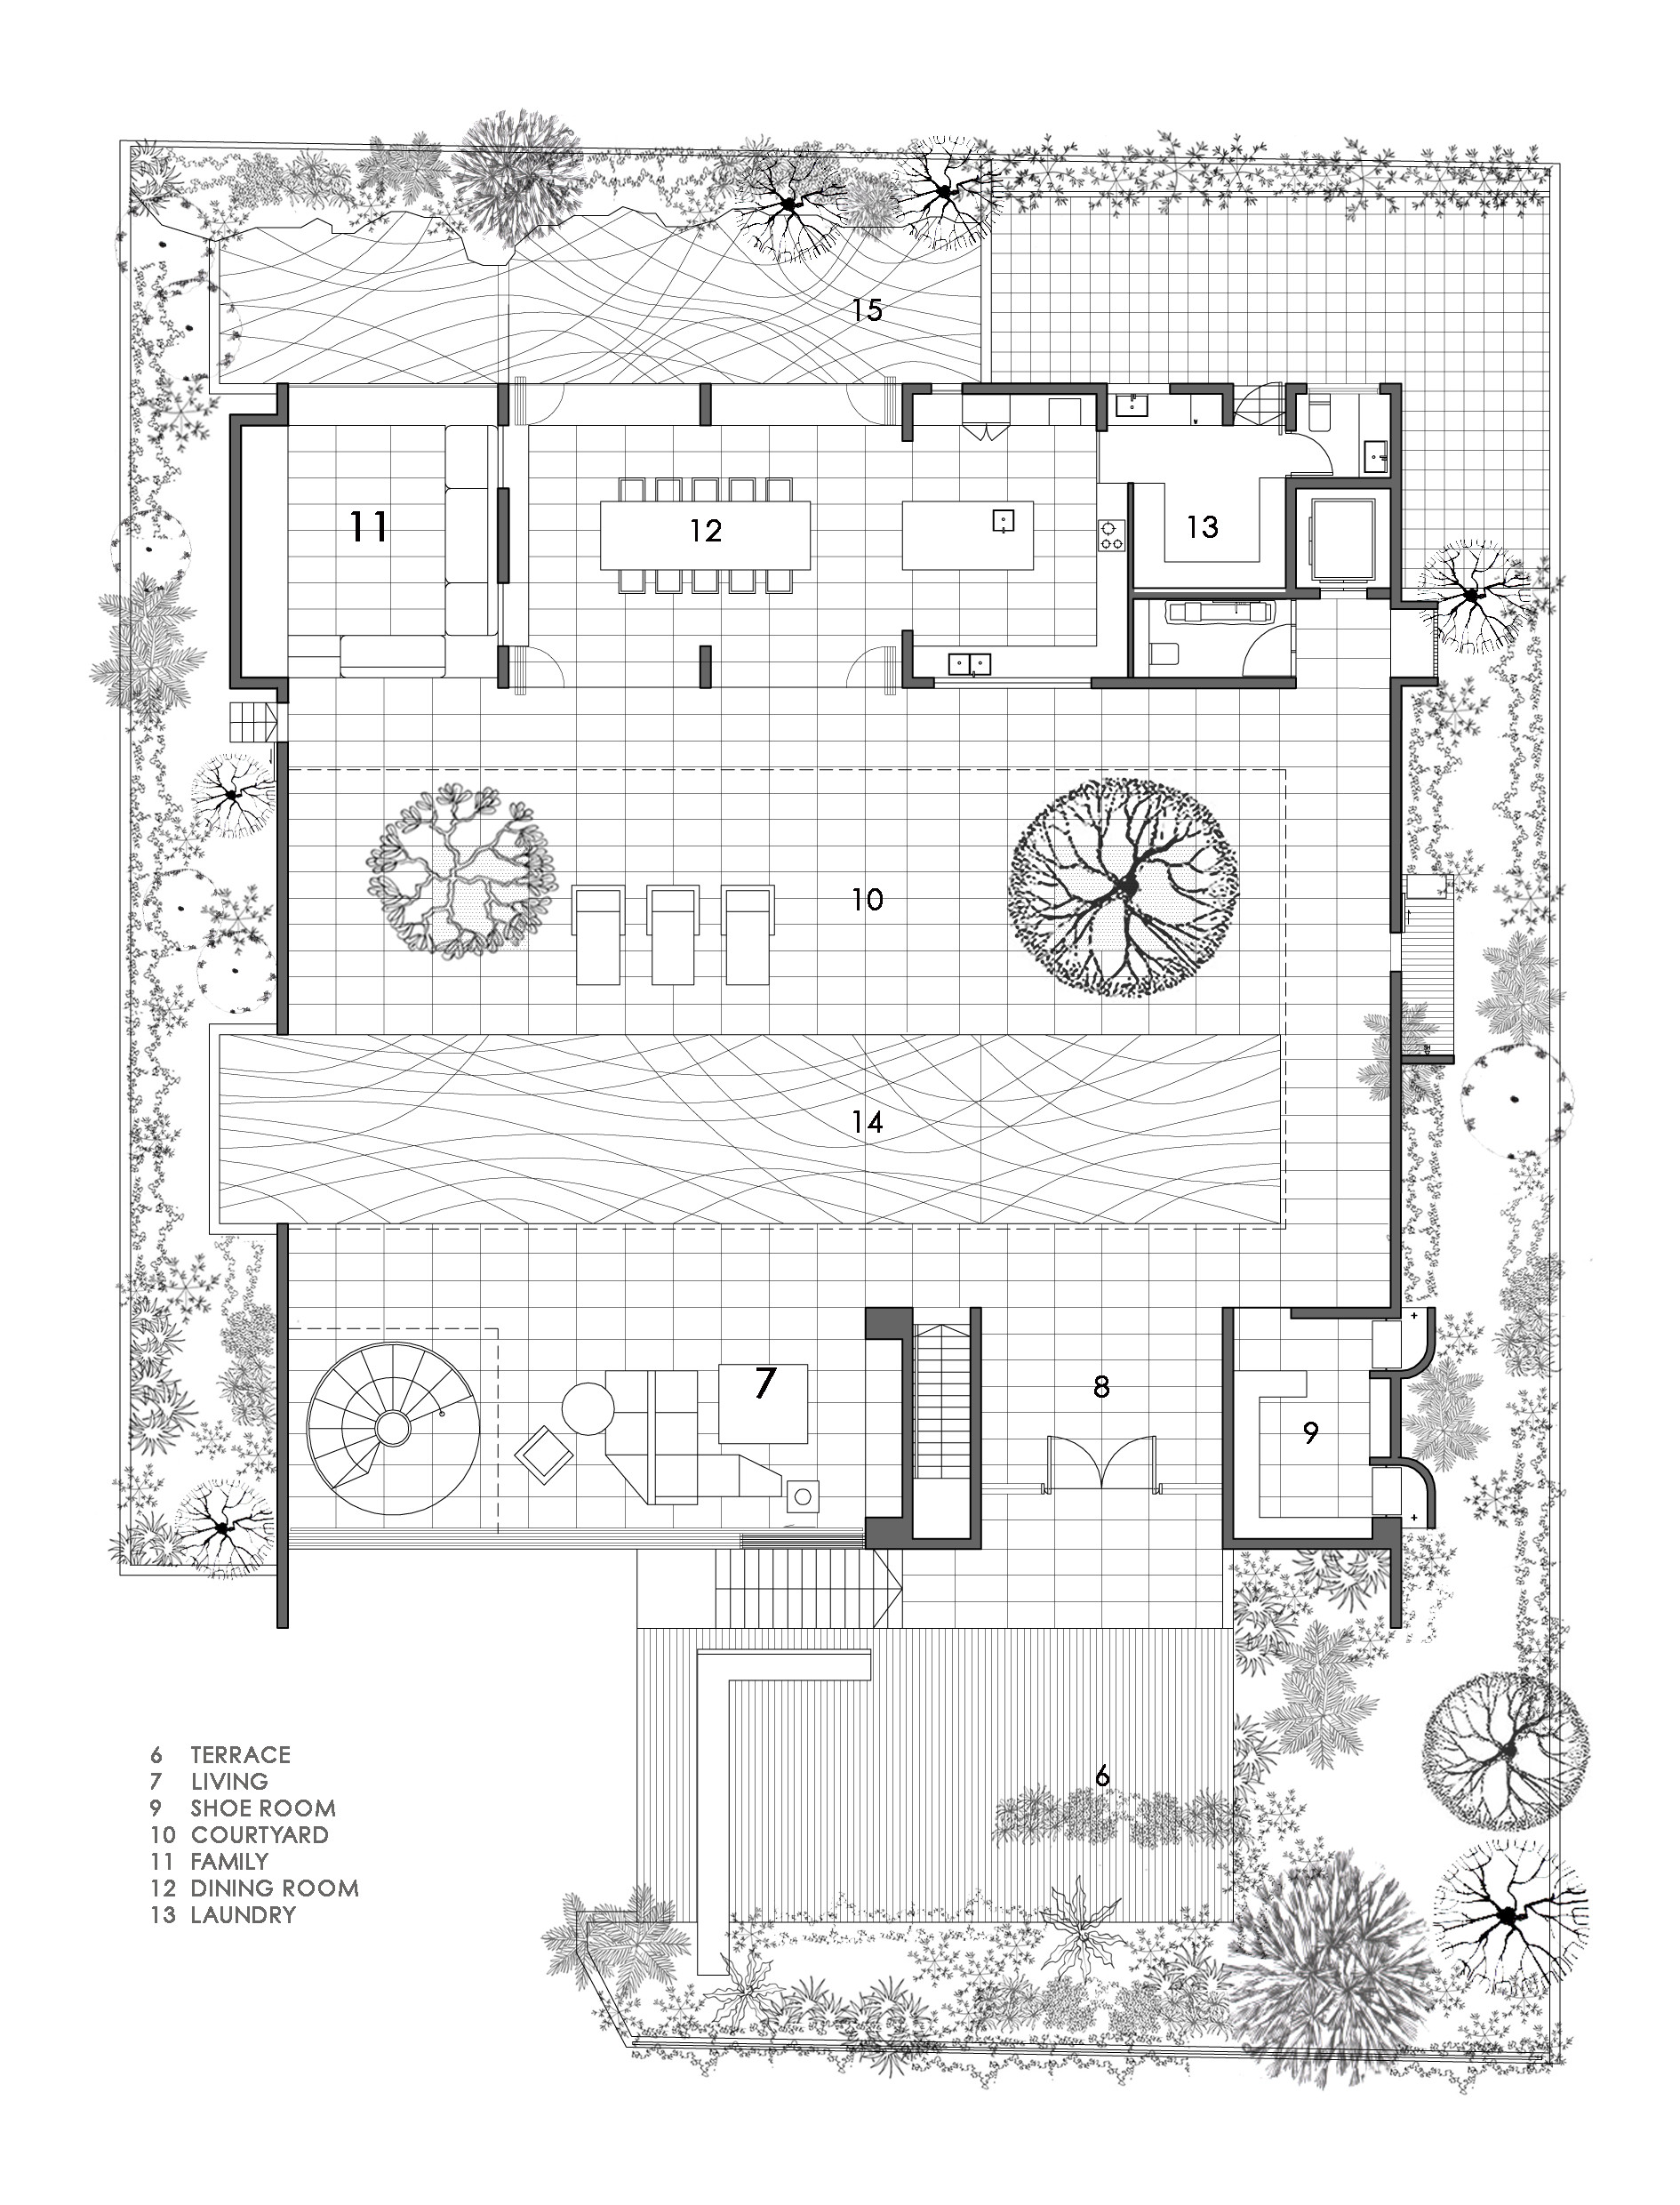 courtyard floor plans gallery of the courtyard house formwerkz architects 12 11218